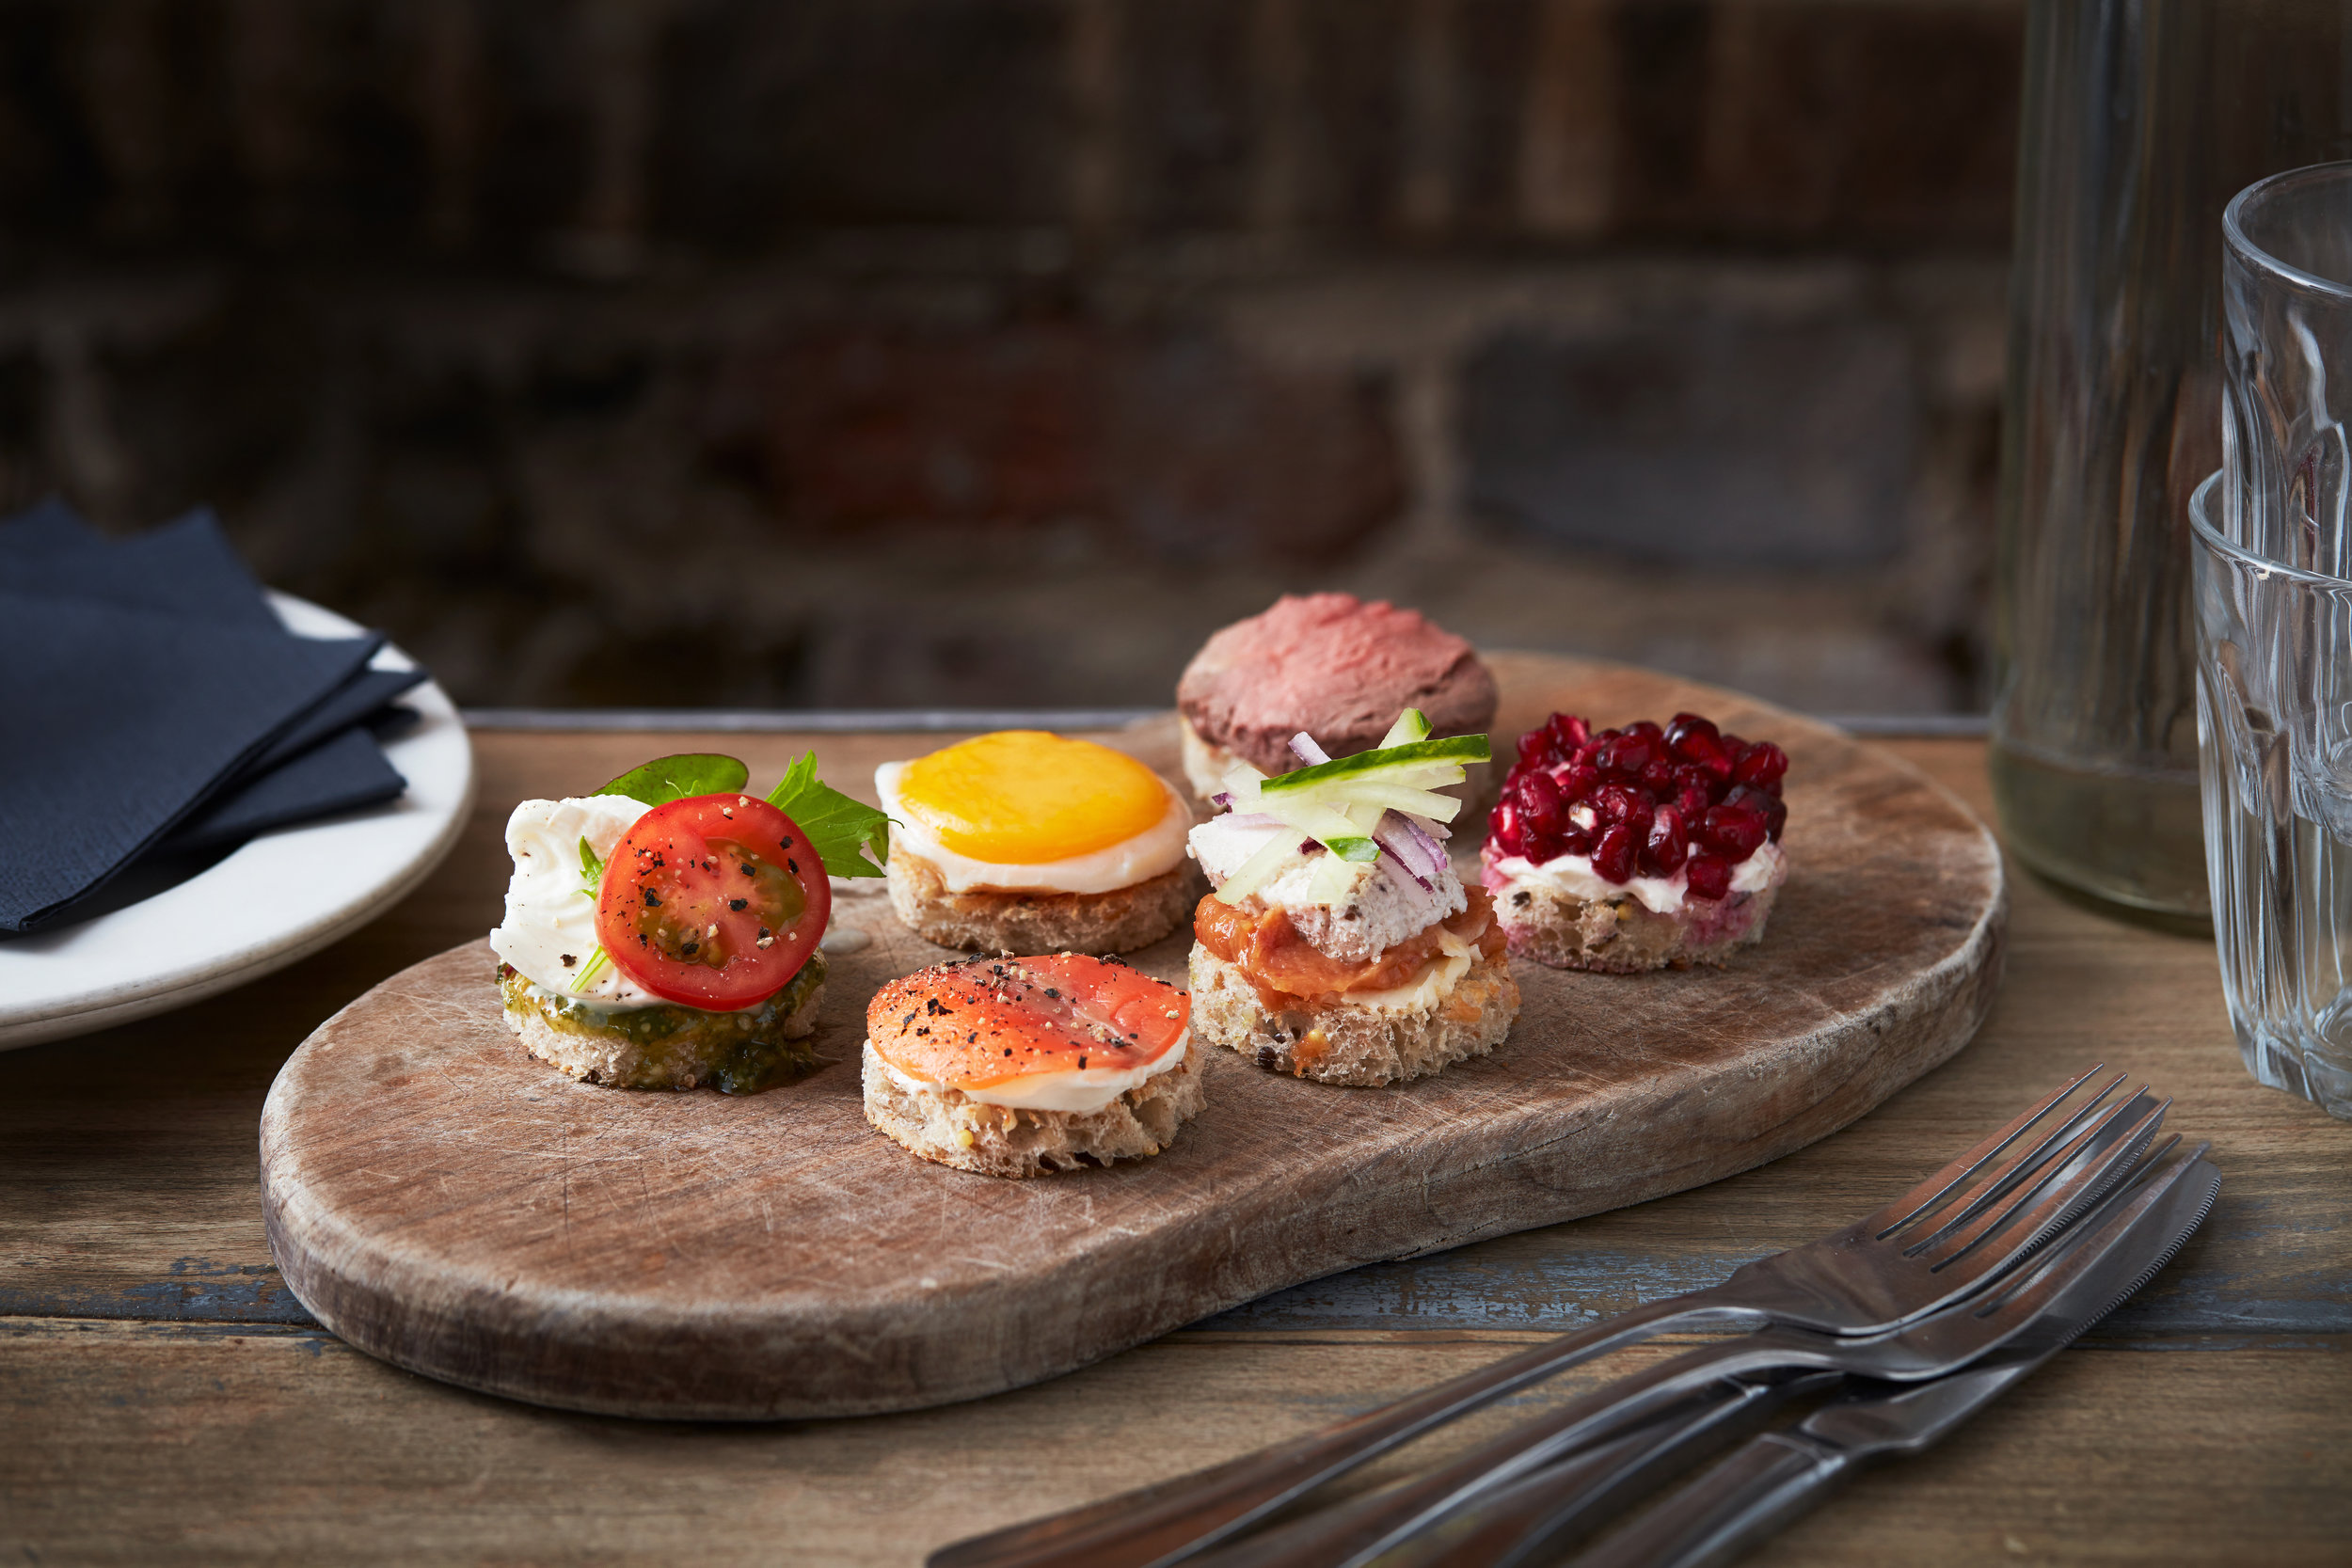 11_01_18_TheGrocer_Canapes_003.jpg